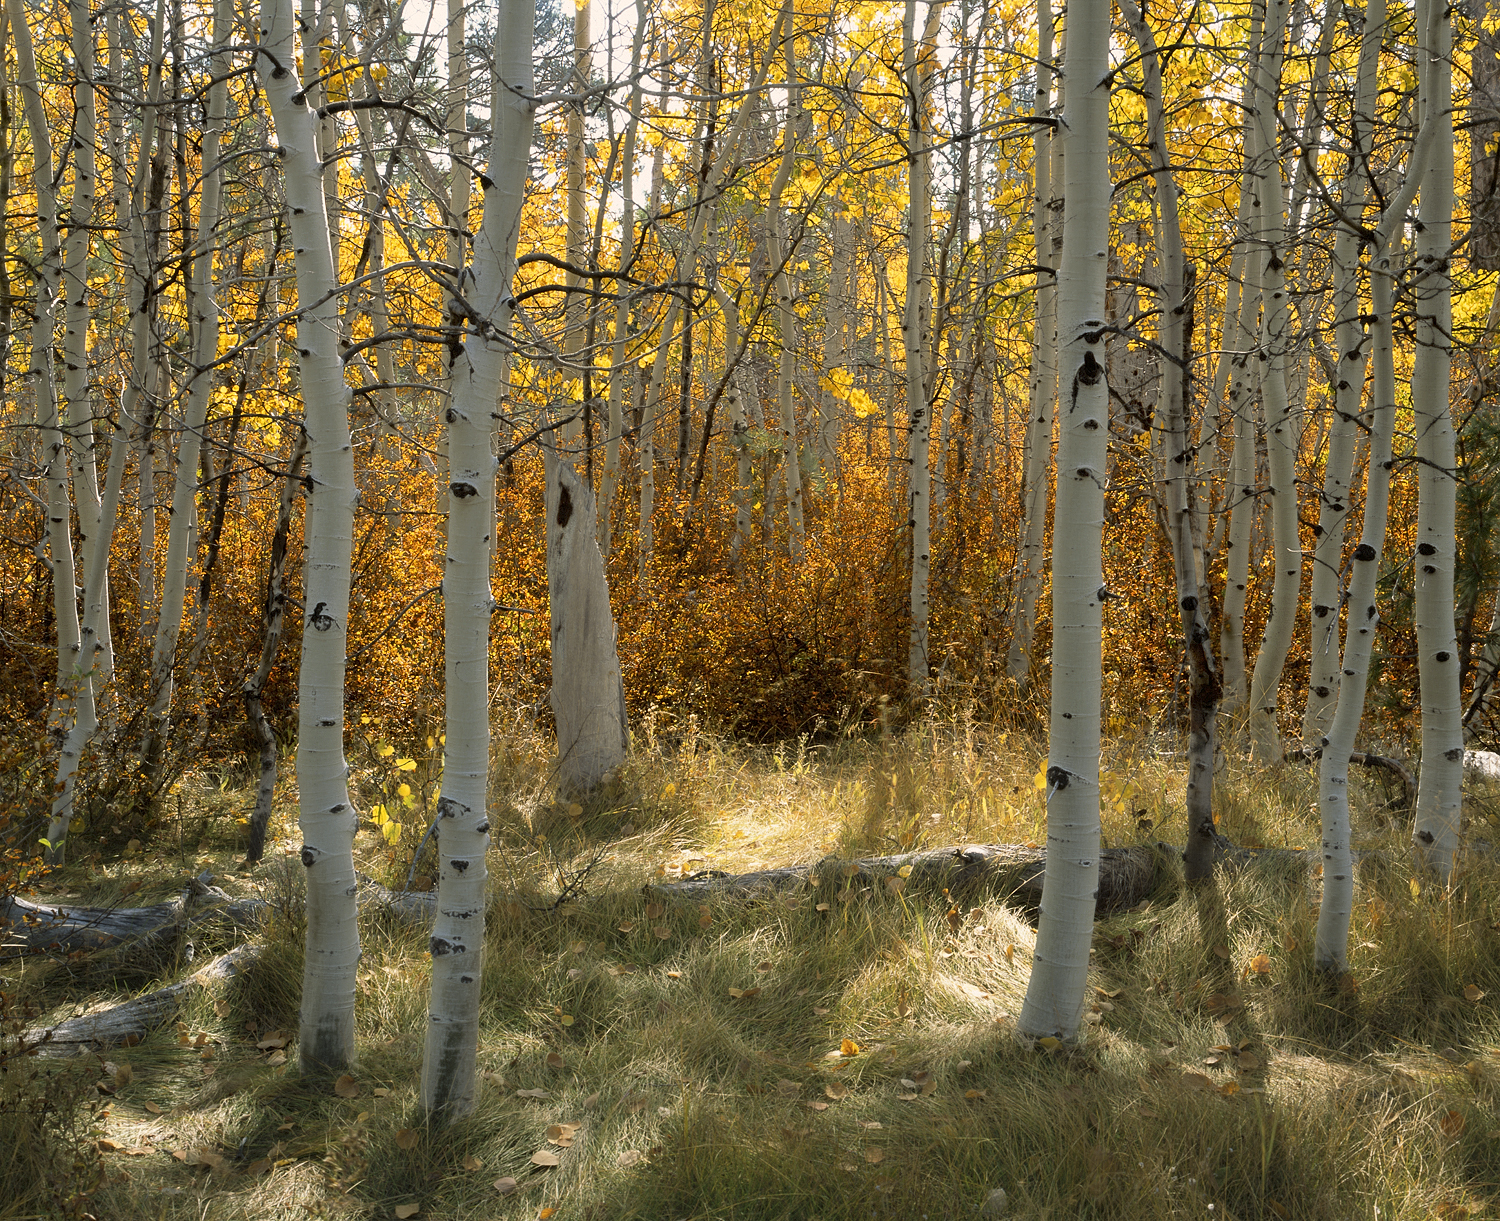 Late Fall in the Aspens